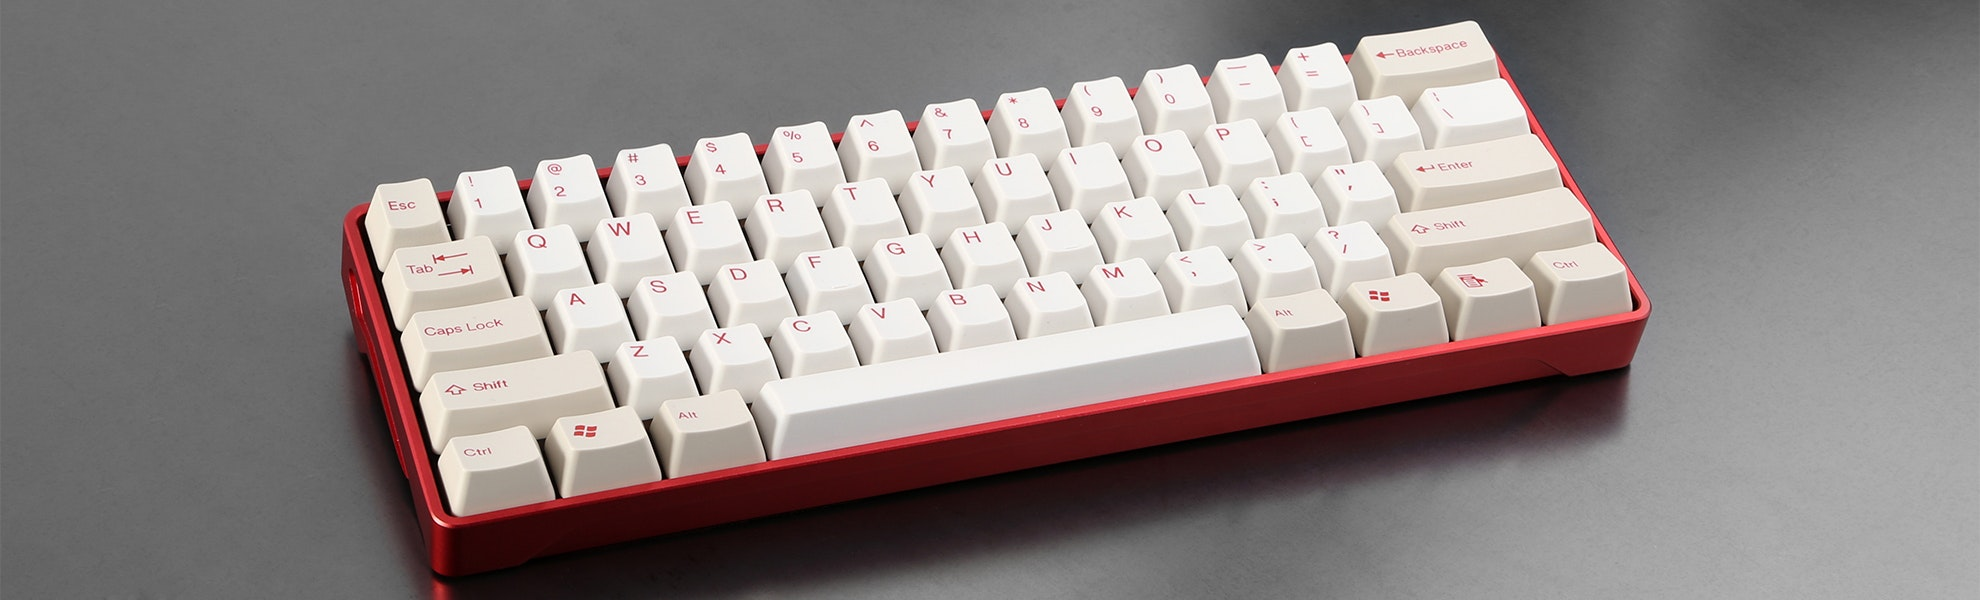 Tai-Hao Red ABS Doubleshot Keycap Set